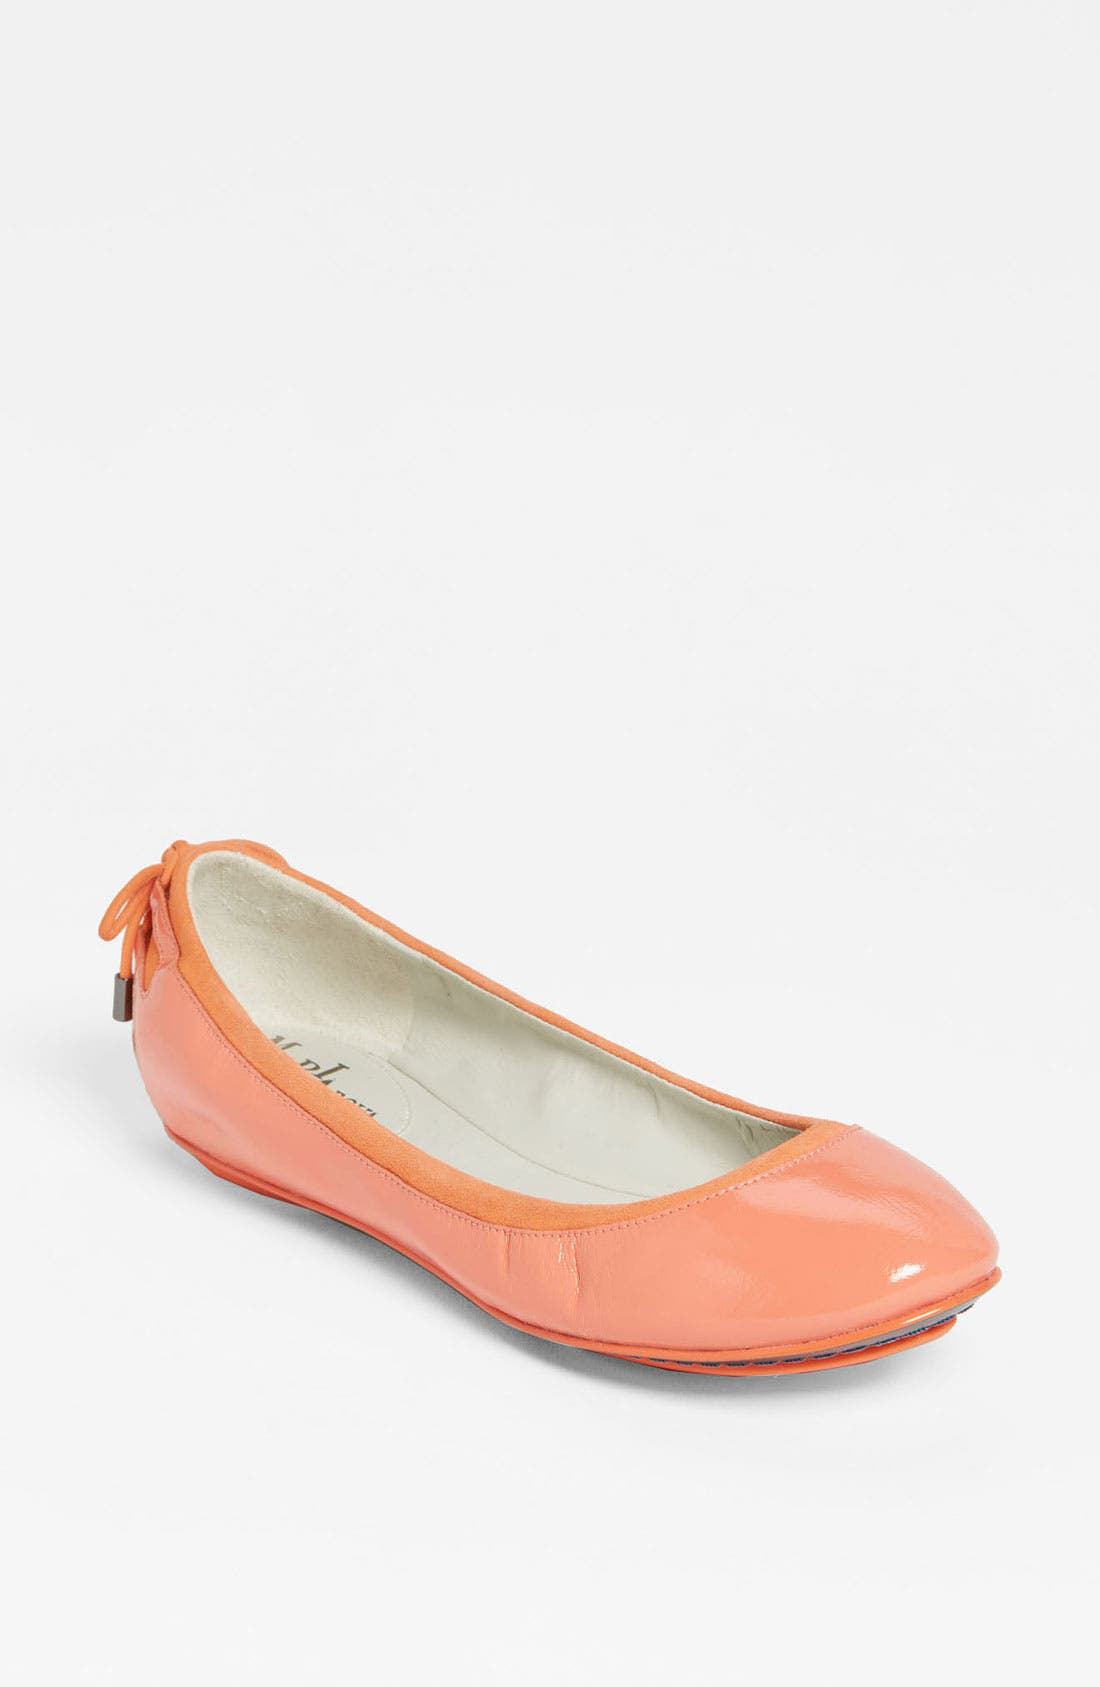 ,                             Maria Sharapova by Cole Haan 'Air Bacara' Flat,                             Main thumbnail 103, color,                             801